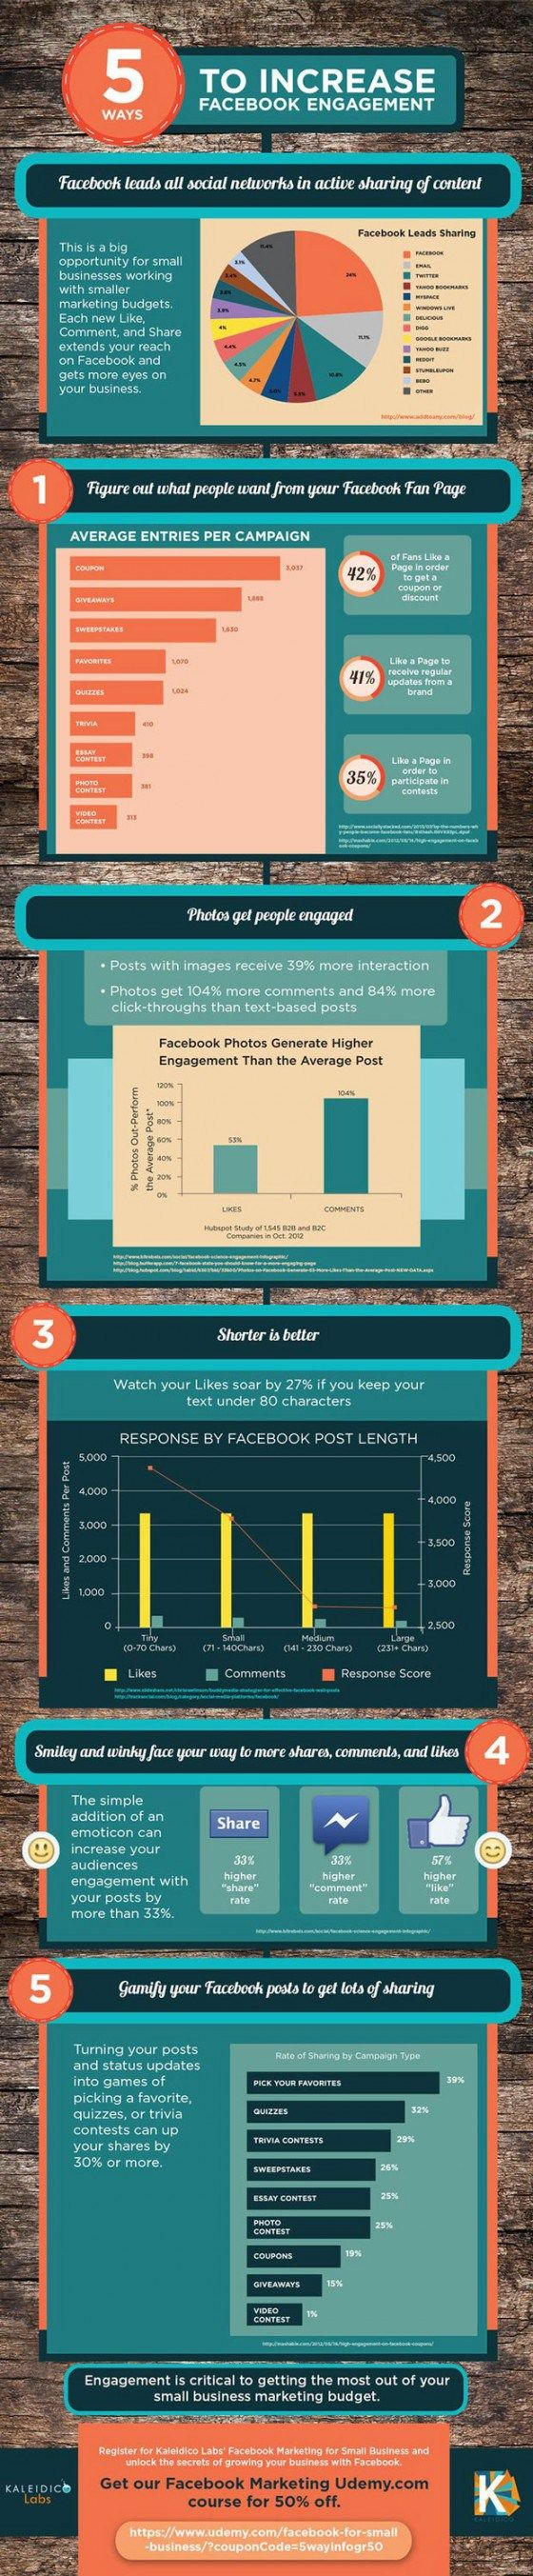 5 Ways To Increase #Facebook Engagement #infographic